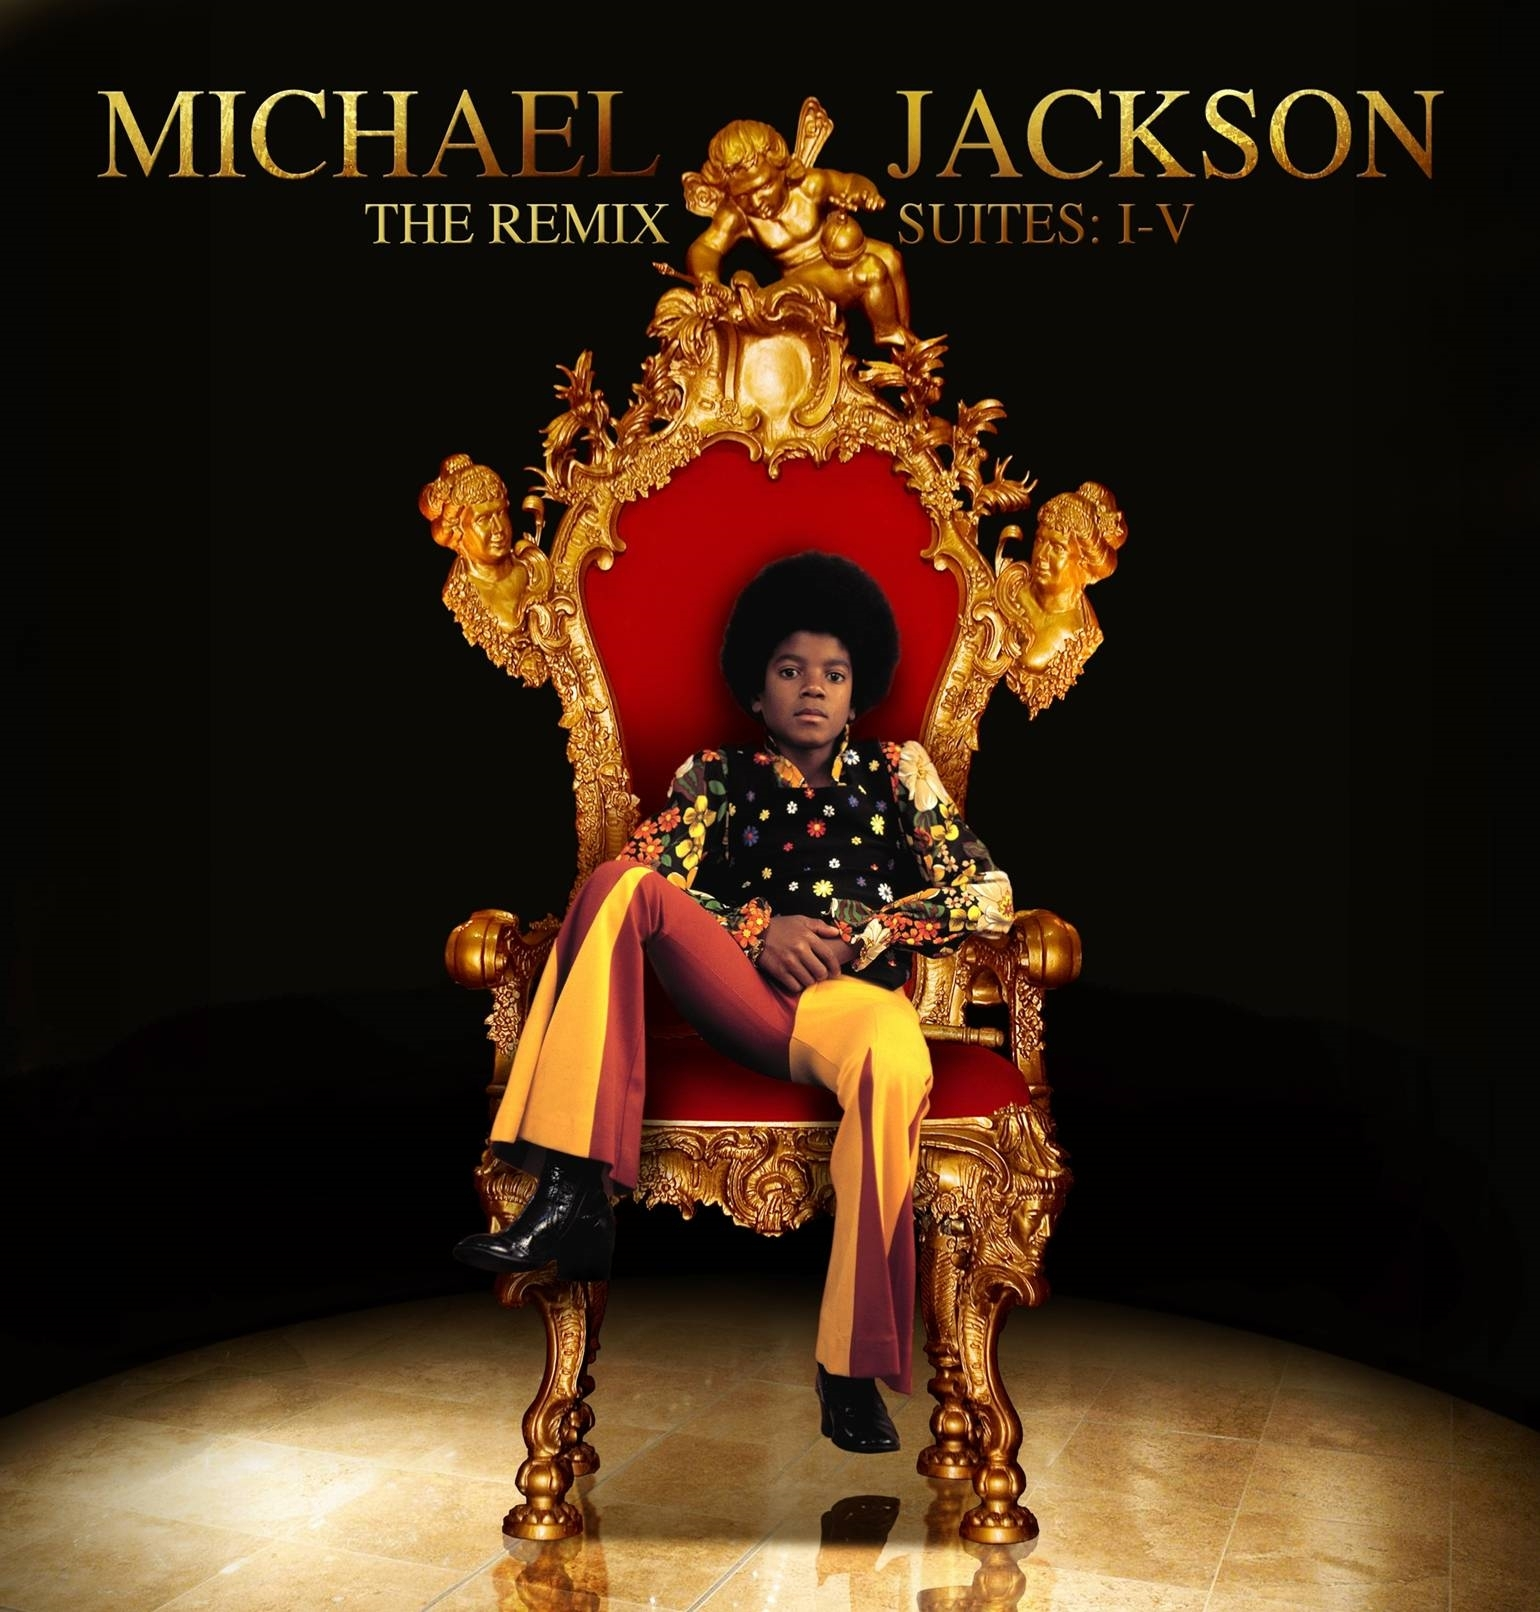 http://images2.fanpop.com/images/photos/7800000/MJ-CD-Covers-michael-jackson-7886984-1540-1612.jpg